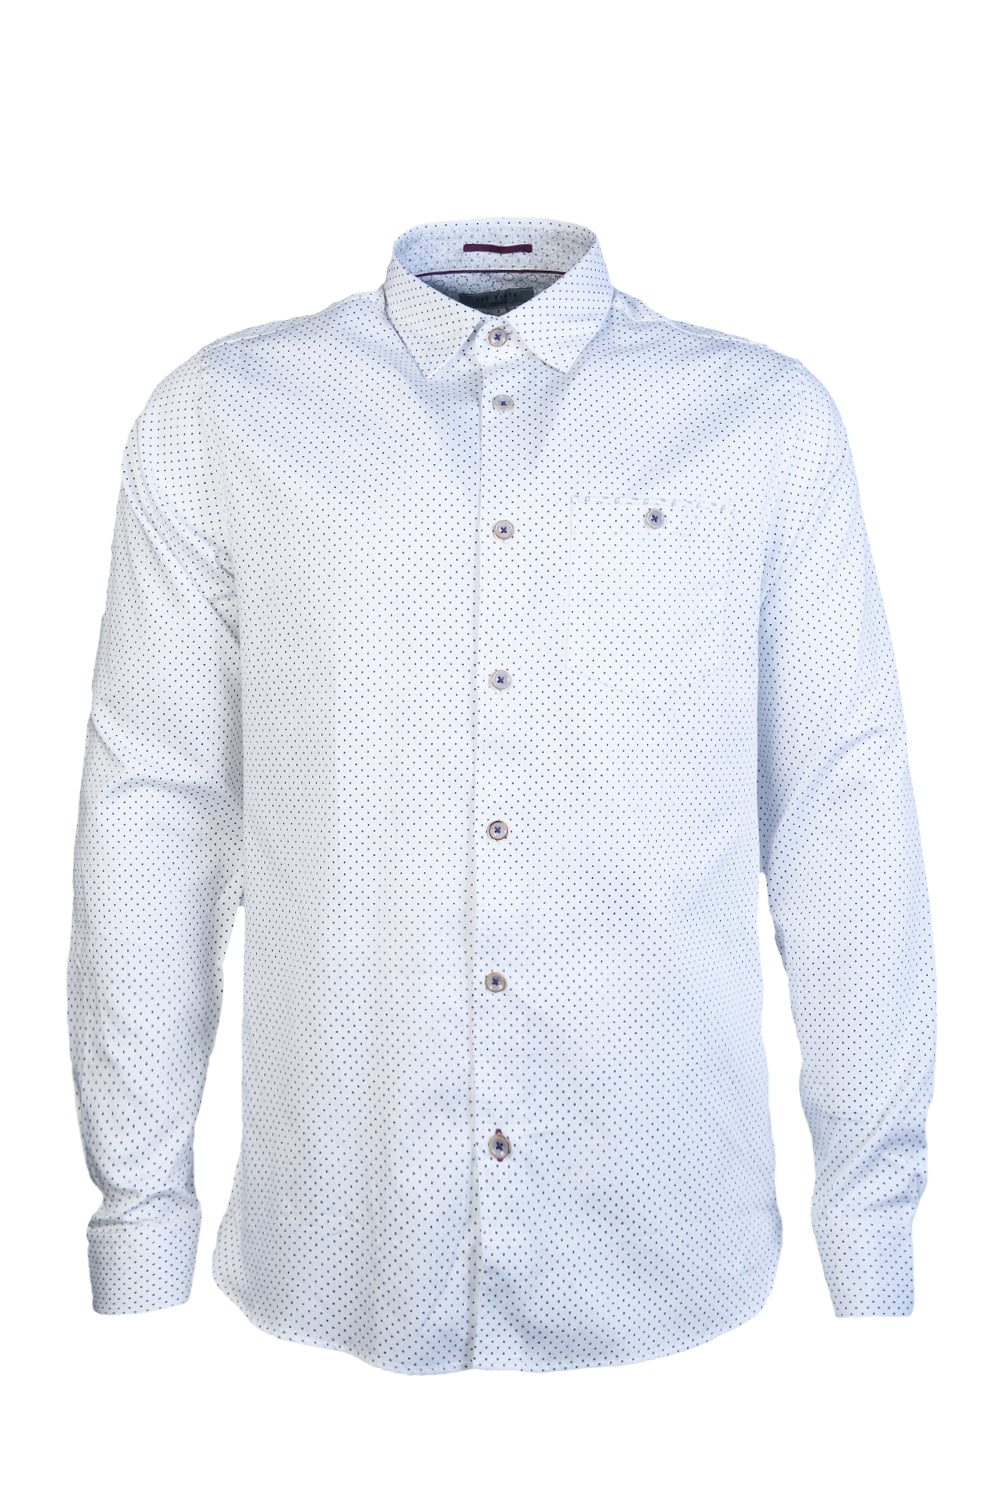 b365e40383c65 Ted Baker Shirts TH8M GA11 SKWERE - Clothing from Sage Clothing UK